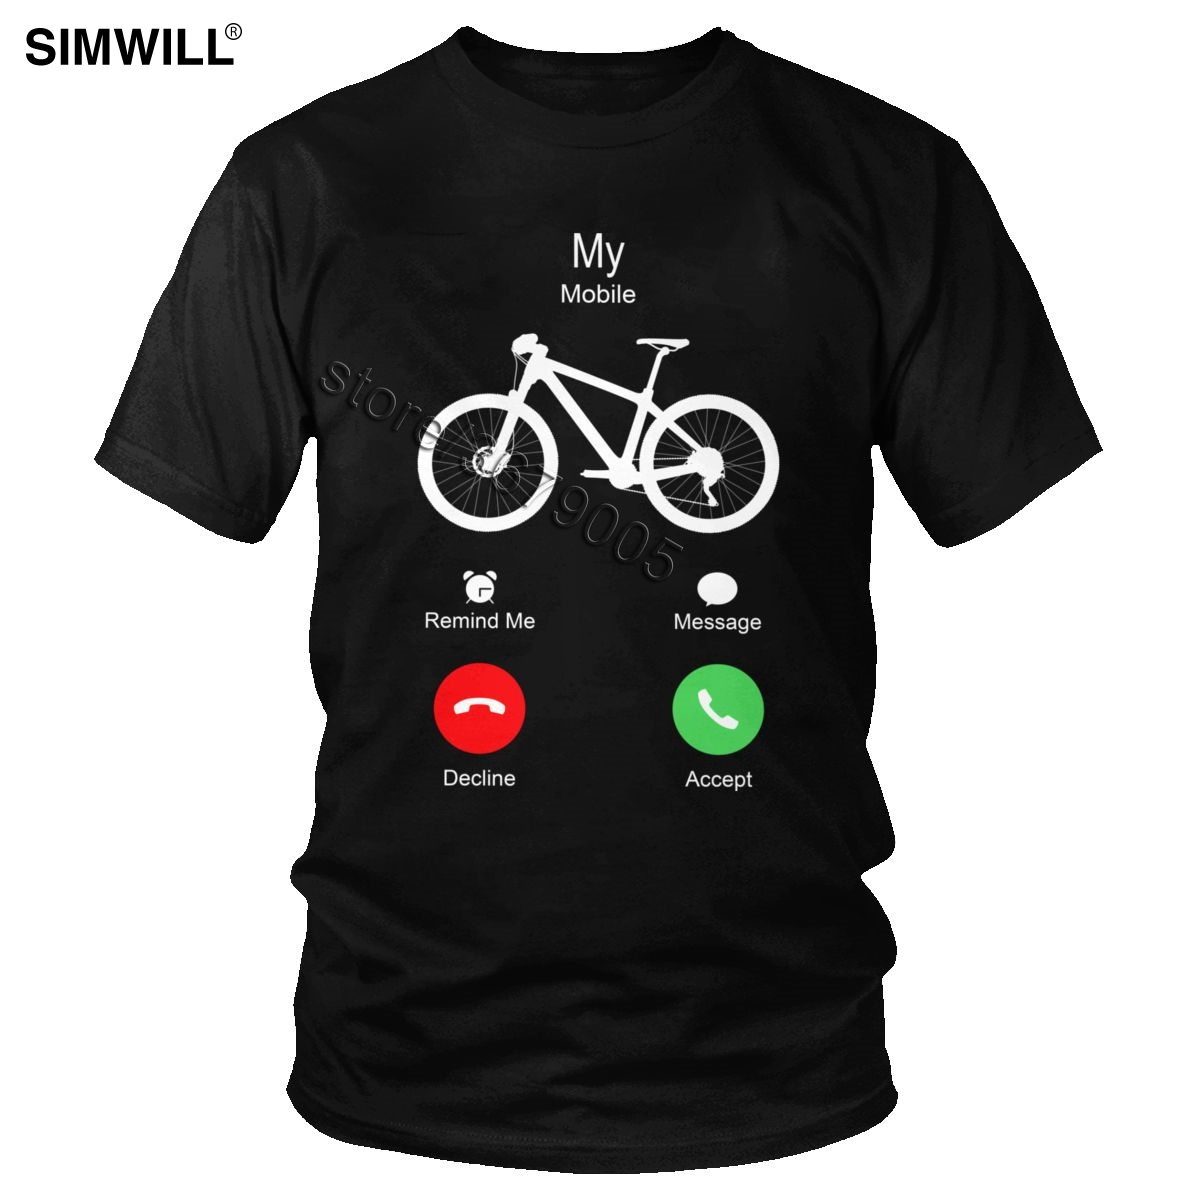 Summer Funny My MTB Mobile Is Calling To Ride Shirt Short Sleeved Mountain Bike Lover T Shirt Biking T-shirt Gift Tee Clothing